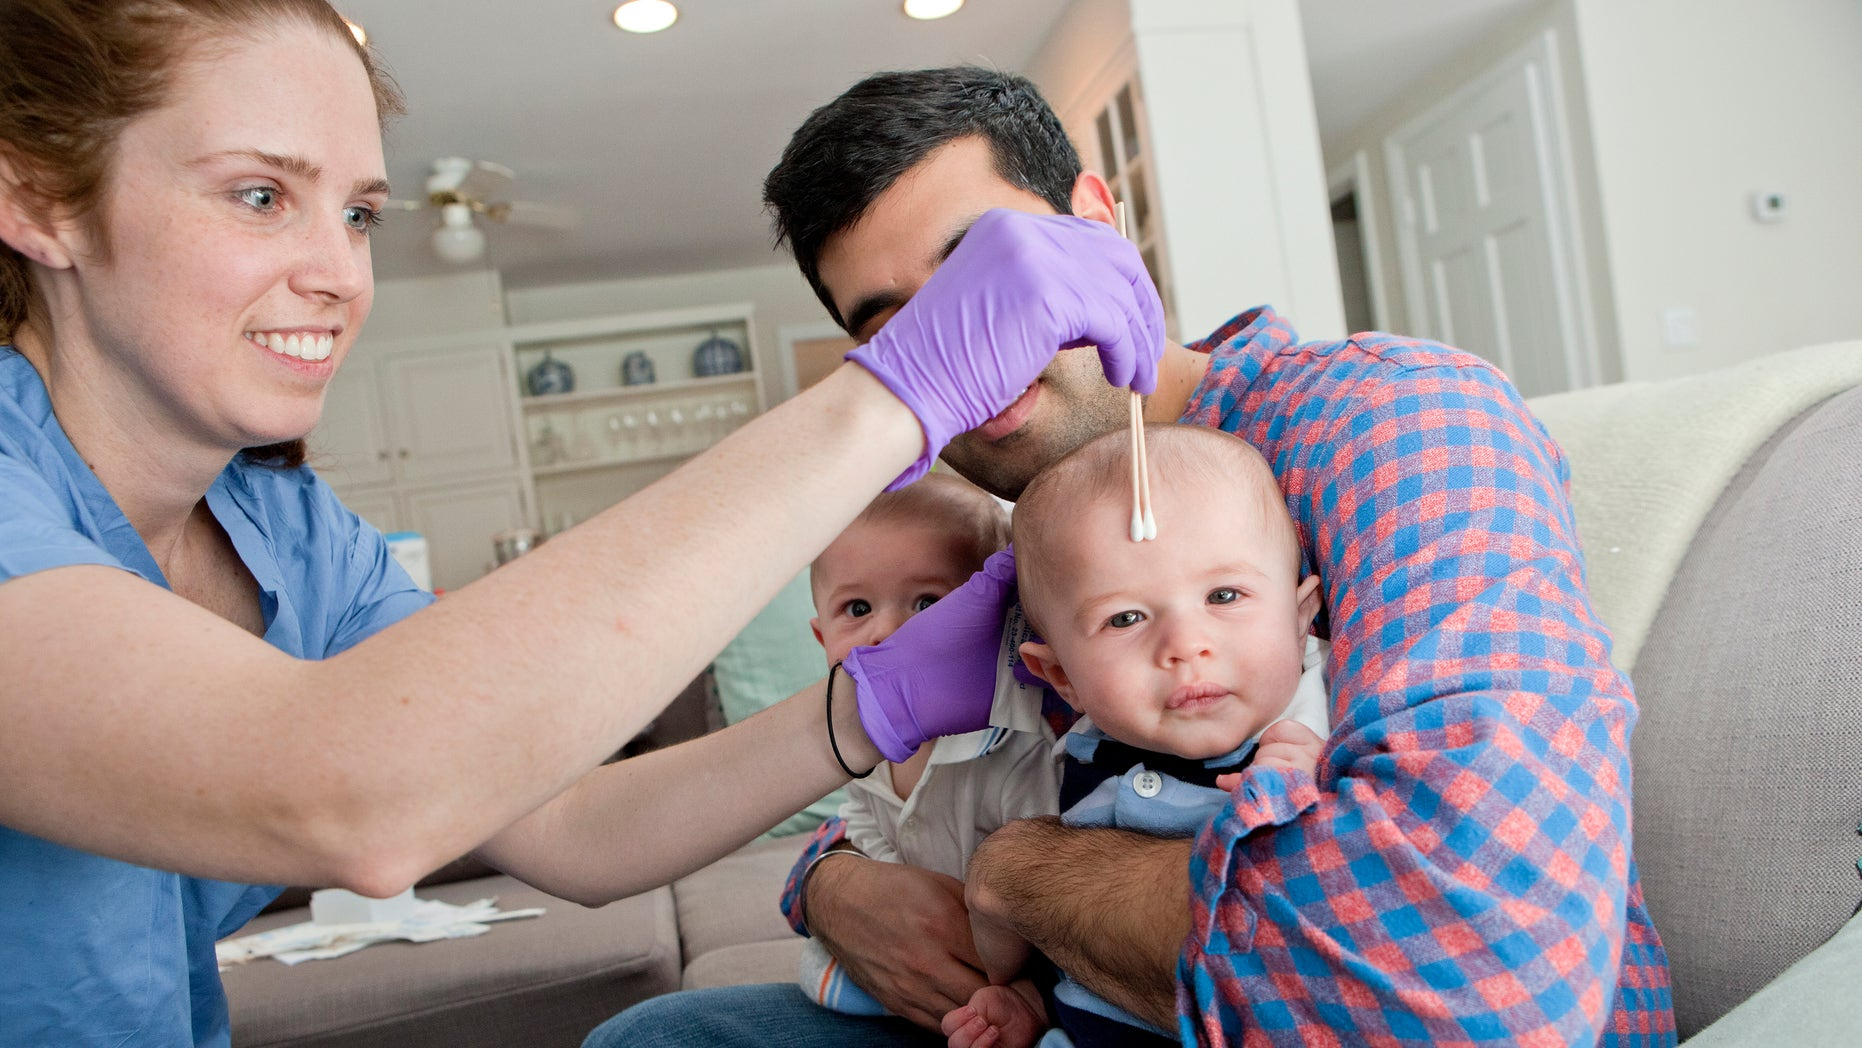 Jan. 29, 2016: This image shows NYU senior research coordinator Nora Henderson collecting samples of bacteria from twin boys at their Mamaroneck, N.Y., home.